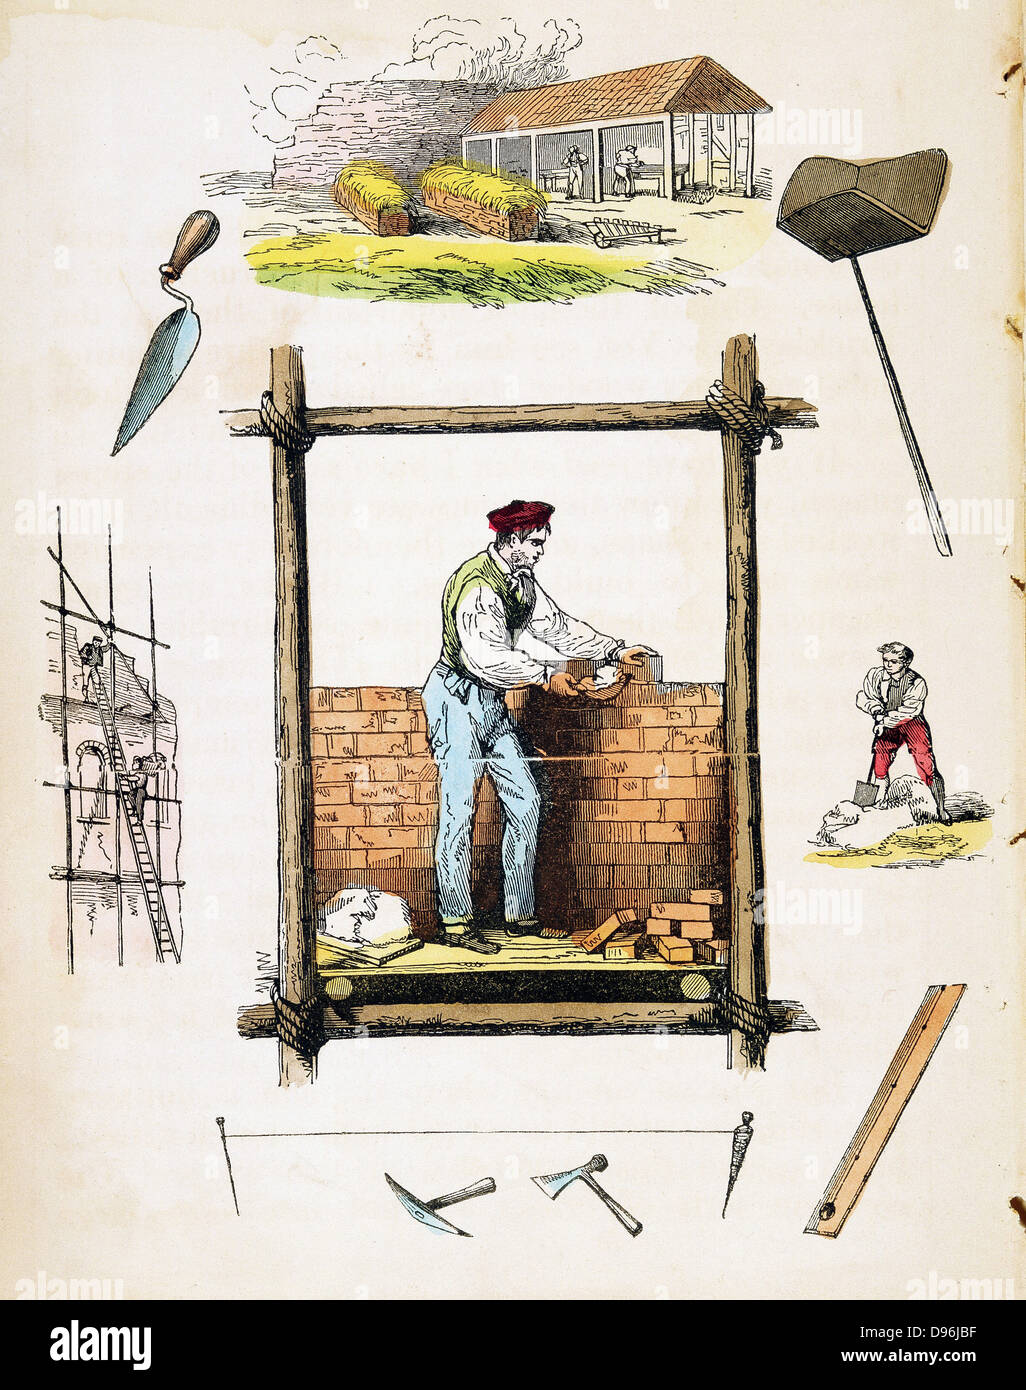 Bricklayer working on wooden scaffold. Top: Brickyard. Right: Miixing mortar. Hand-coloured wood engraving from - Stock Image